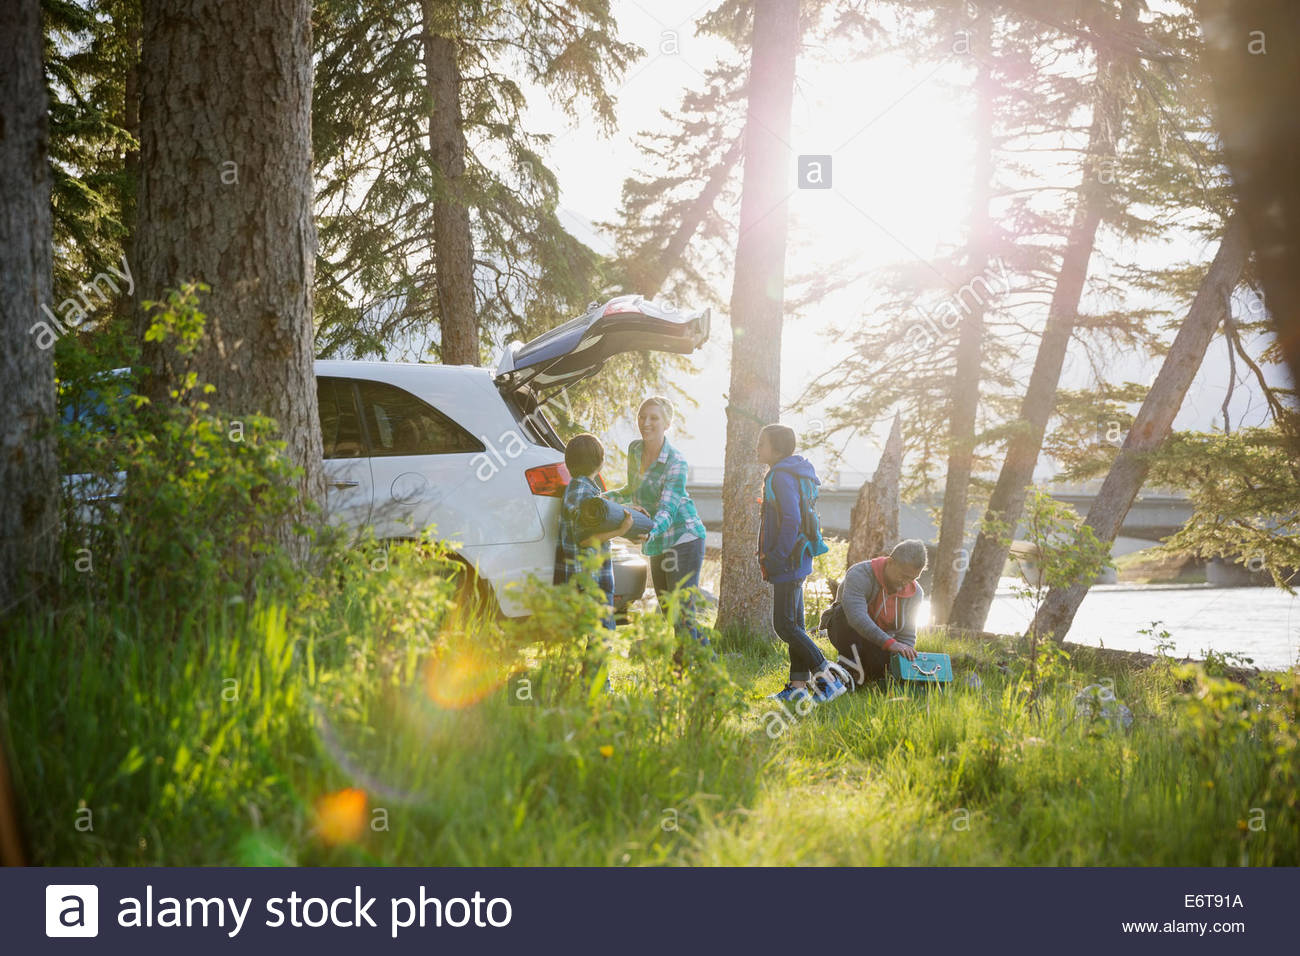 Family unpacking car at campsite - Stock Image